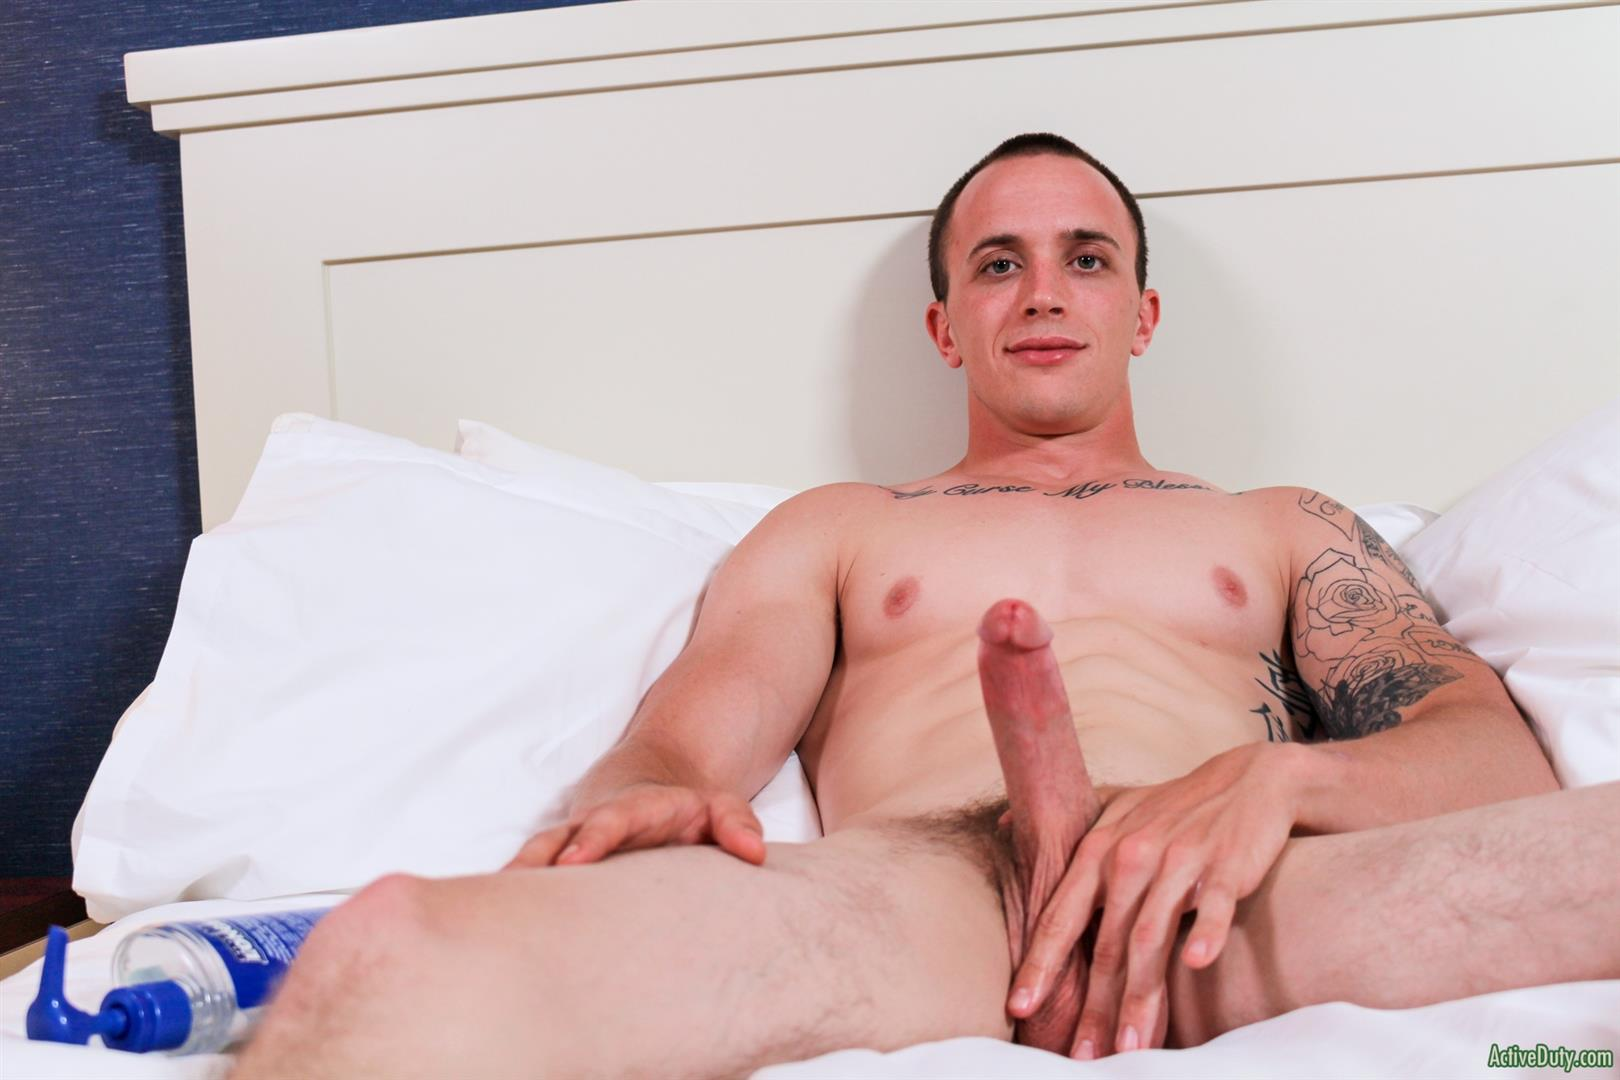 Active Duty James Straight Army Guy Jerking Off His Big Cock Amateur Gay Porn 10 Tatted Straight Army Hunk Auditions For Gay Porn and Shoots A Big Load